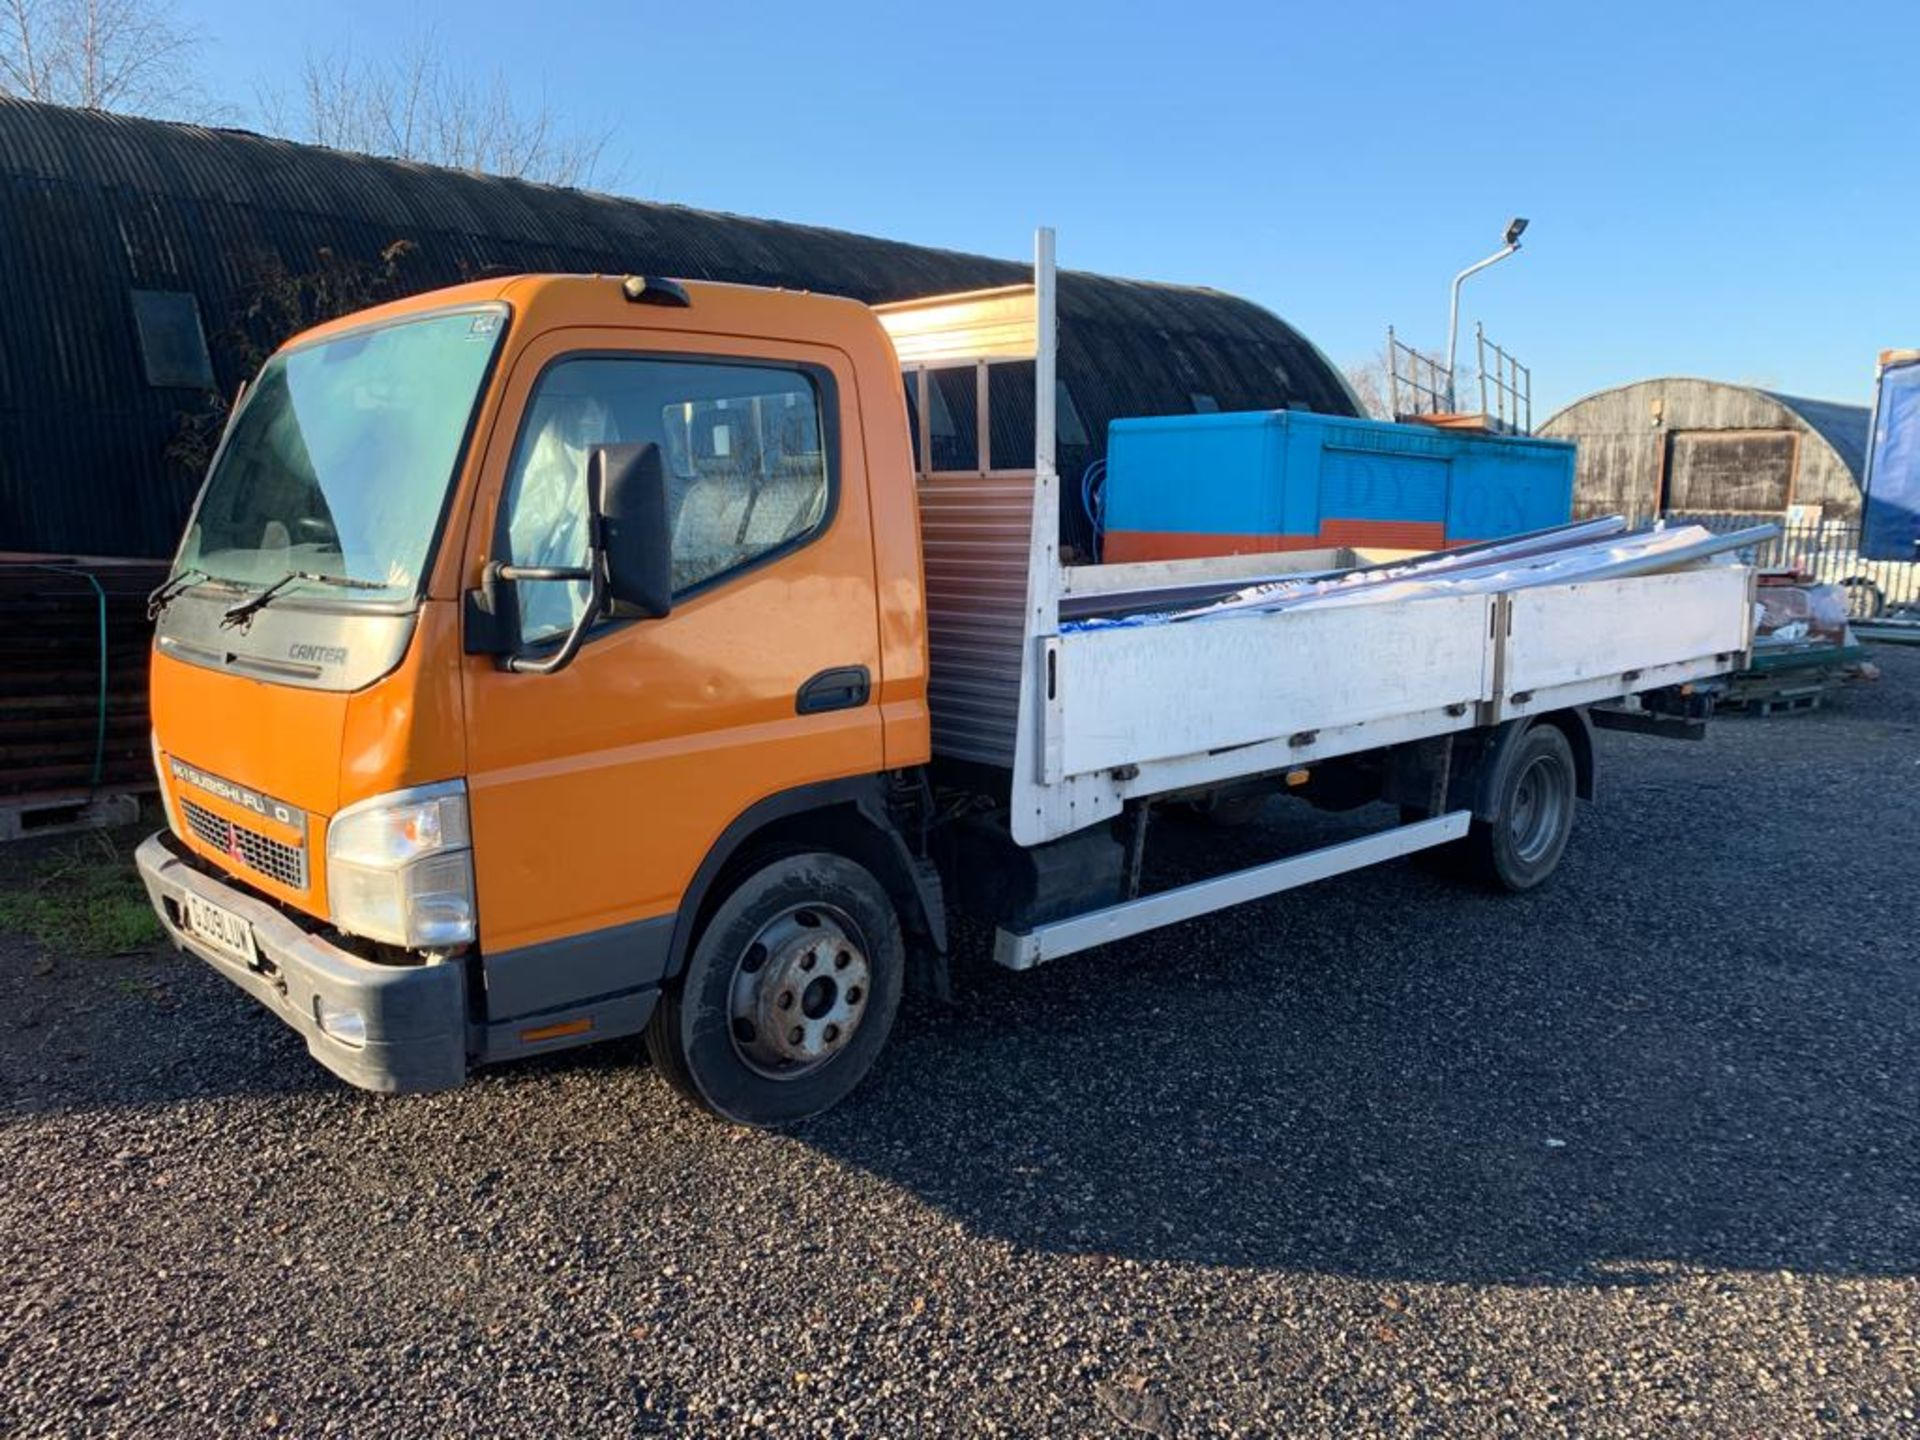 Lot 153 - 2009 REG MITSUBISHI FUSO CANTER 7C15 3.0 DIESEL ORANGE DROPSIDE LORRY, SHOWING 2 FORMER KEEPERS